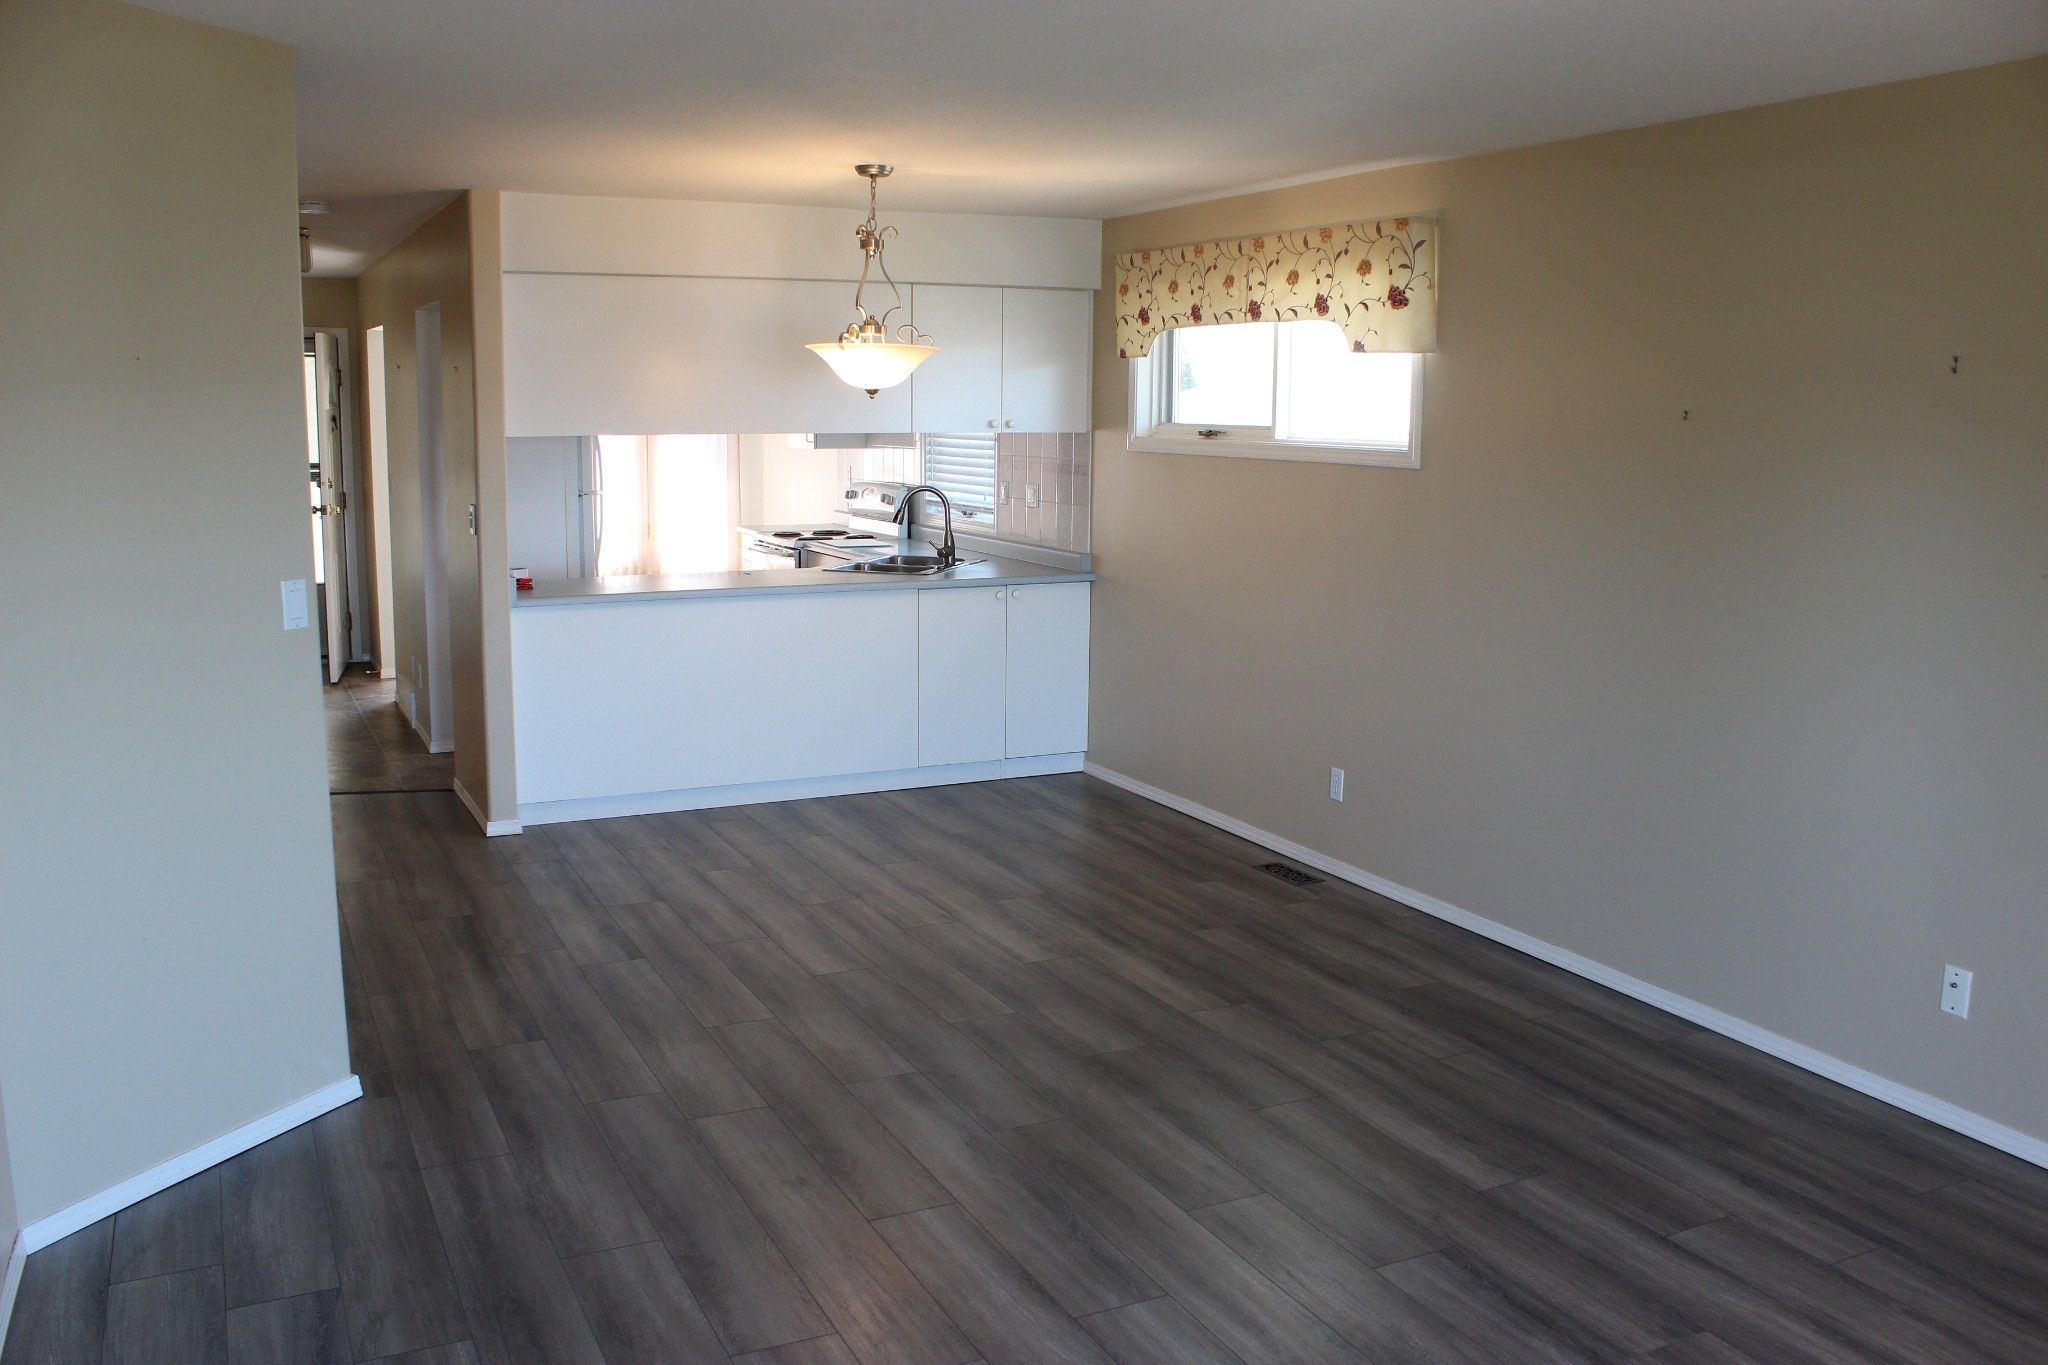 Photo 4: Photos: 4 1580 Springhill Drive in Kamloops: Sahali Townhouse for sale : MLS®# 156043